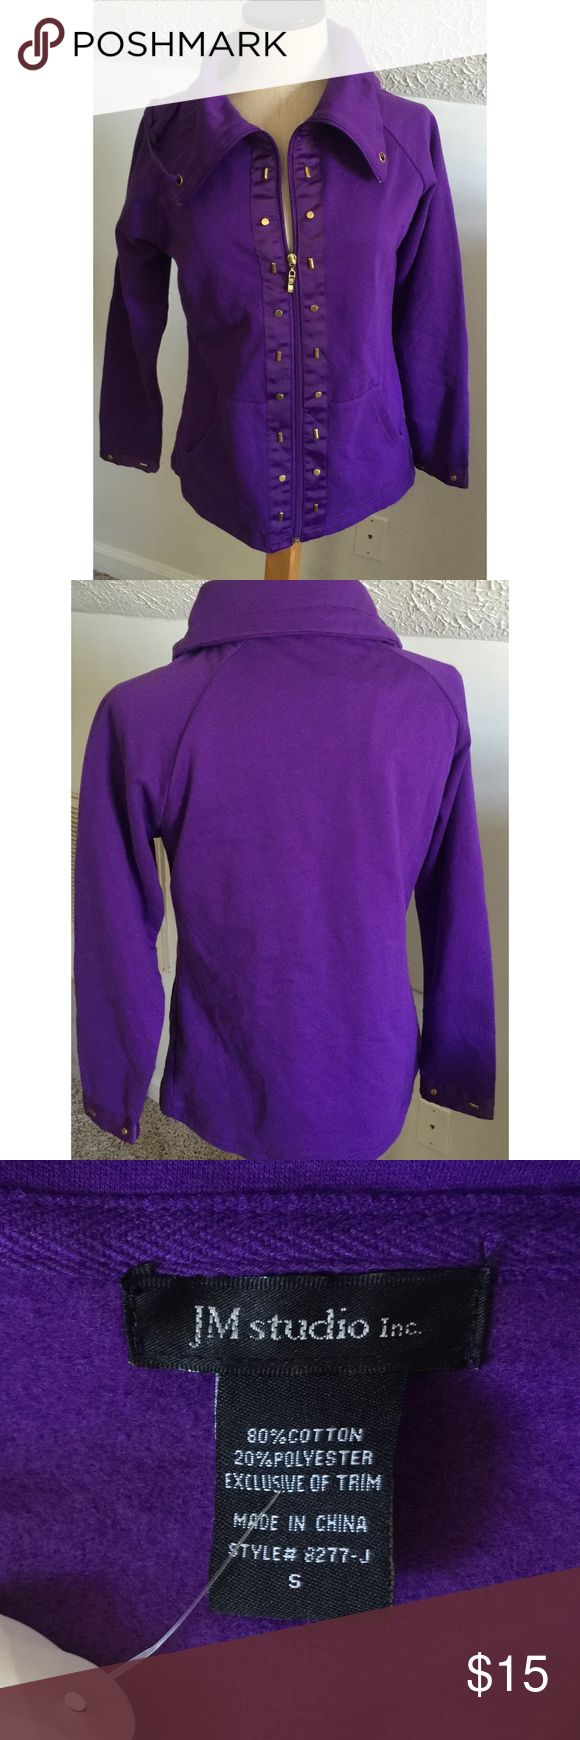 NWT purple zip sweater jacket sz S women's Zips up, has a cord around good area but needs to be redone bc it seems to only be coming out of one side (see last photo).  Otherwise this is an awesome find, it is high quality, warm, thick, pretty details on front as well as sleeves. J.M Studio Sweaters Cardigans